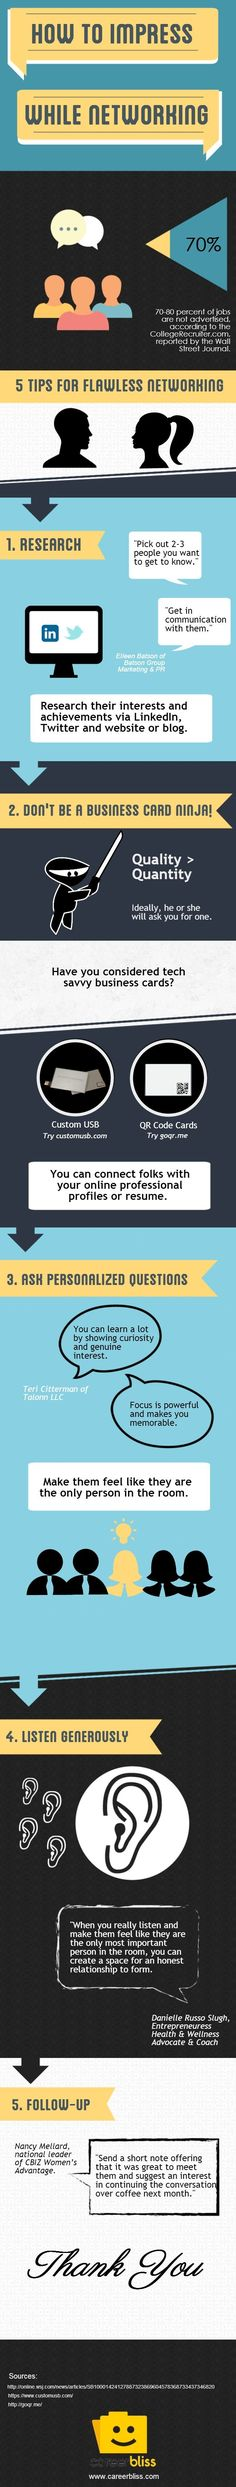 What's one of the best way to get a job? Networking! Read these helpful tips. #CareerTipTuesday